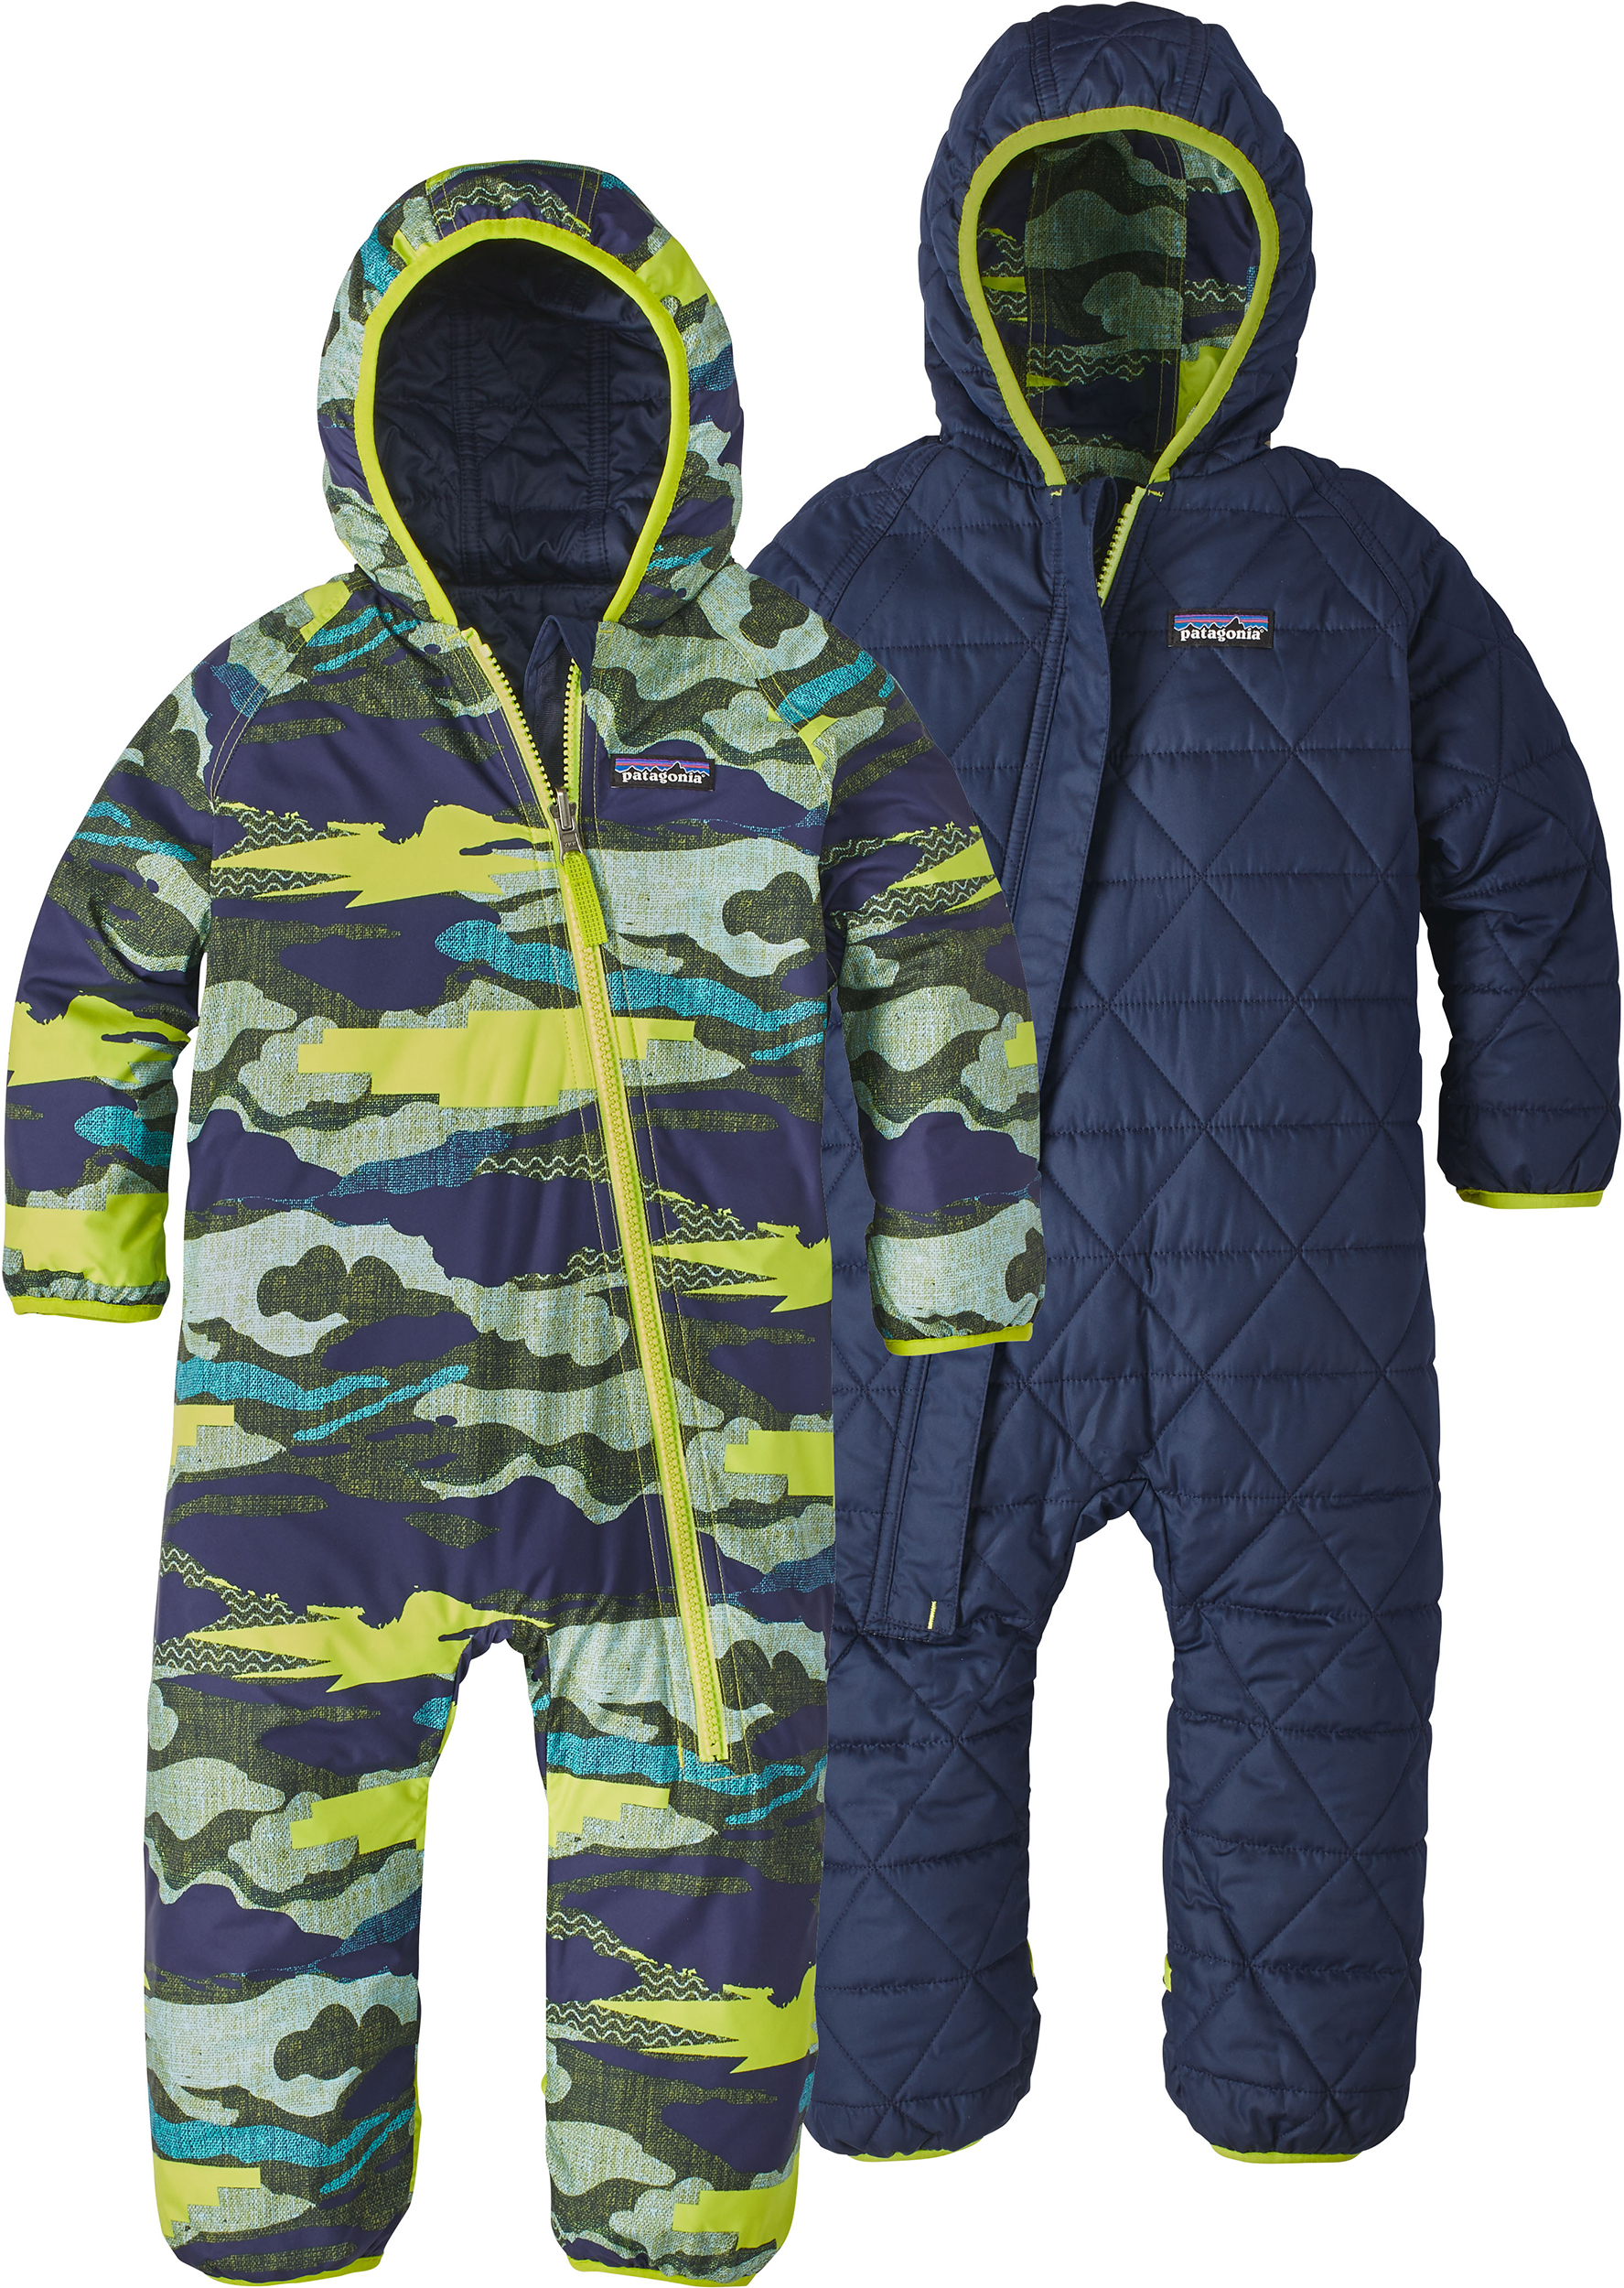 eeadfe57a Patagonia Reversible Puff-Ball Bunting Suit - Infants to Children   MEC